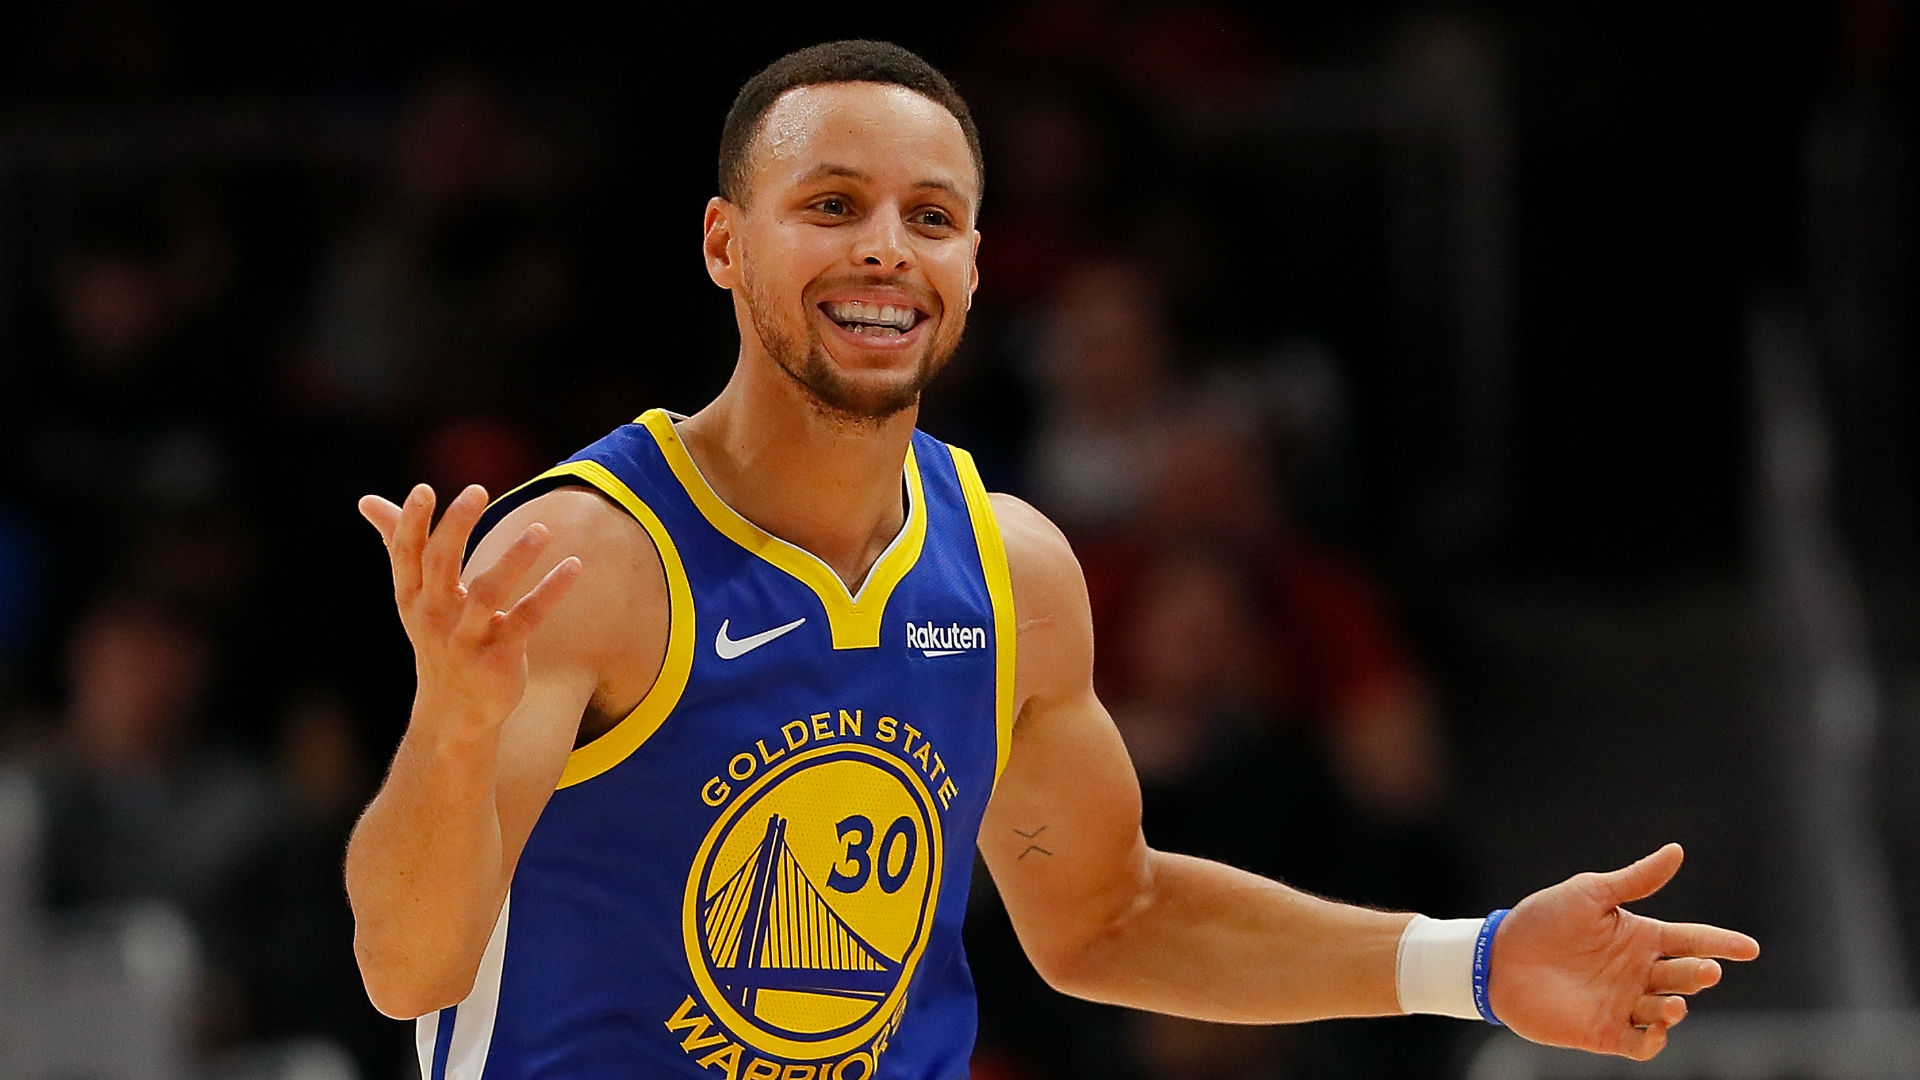 NASA invites Curry to Space Center